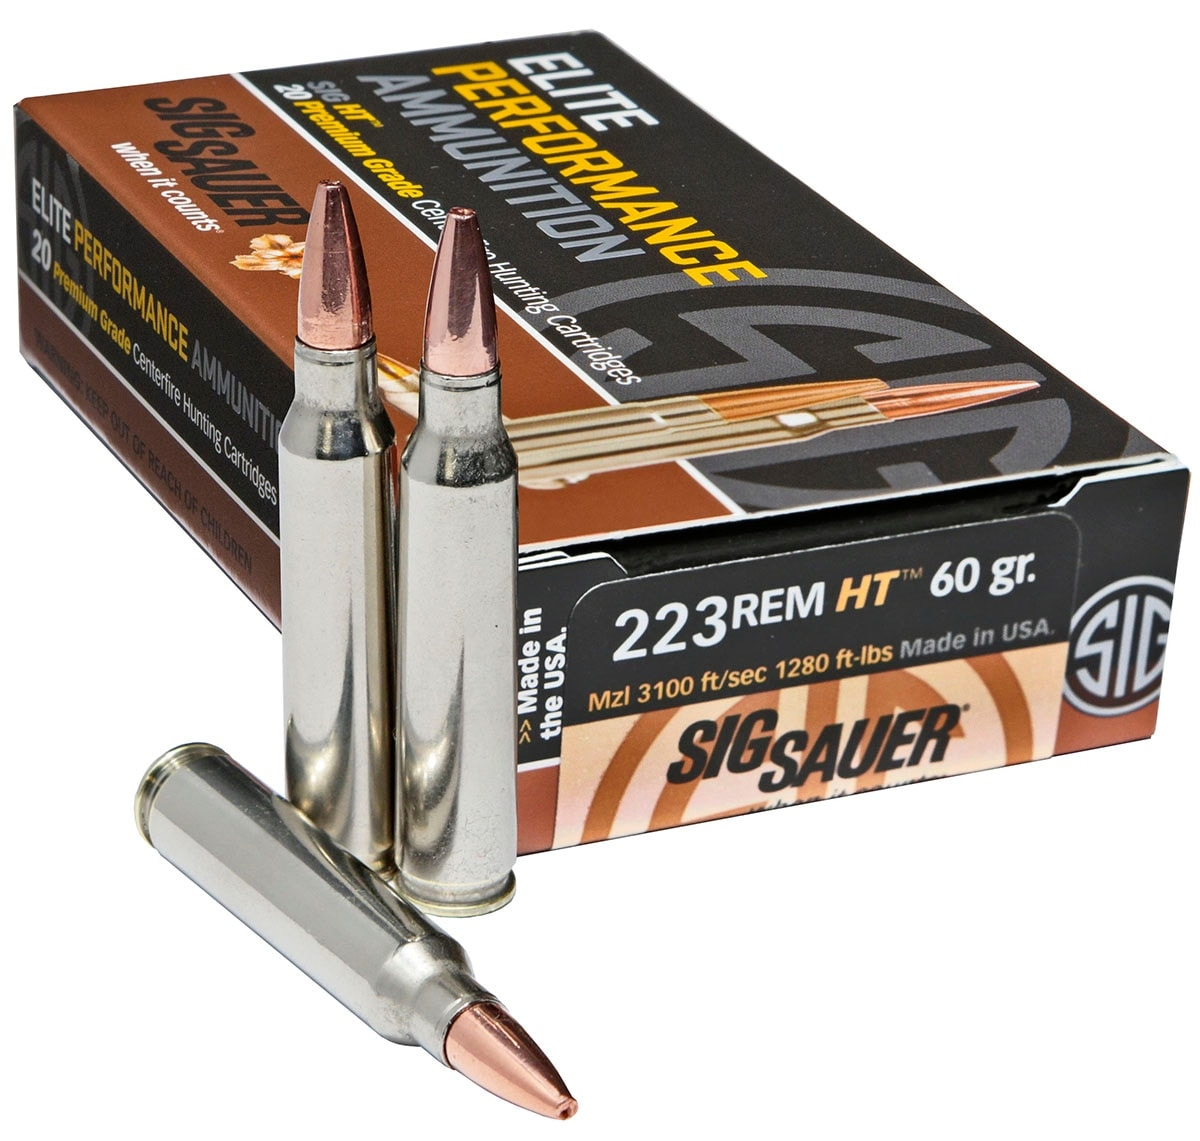 The .223 Rem. round joins the .308 Win and 300 BLK on Sig's rifle ammunition line. (Photo: Sig Sauer)